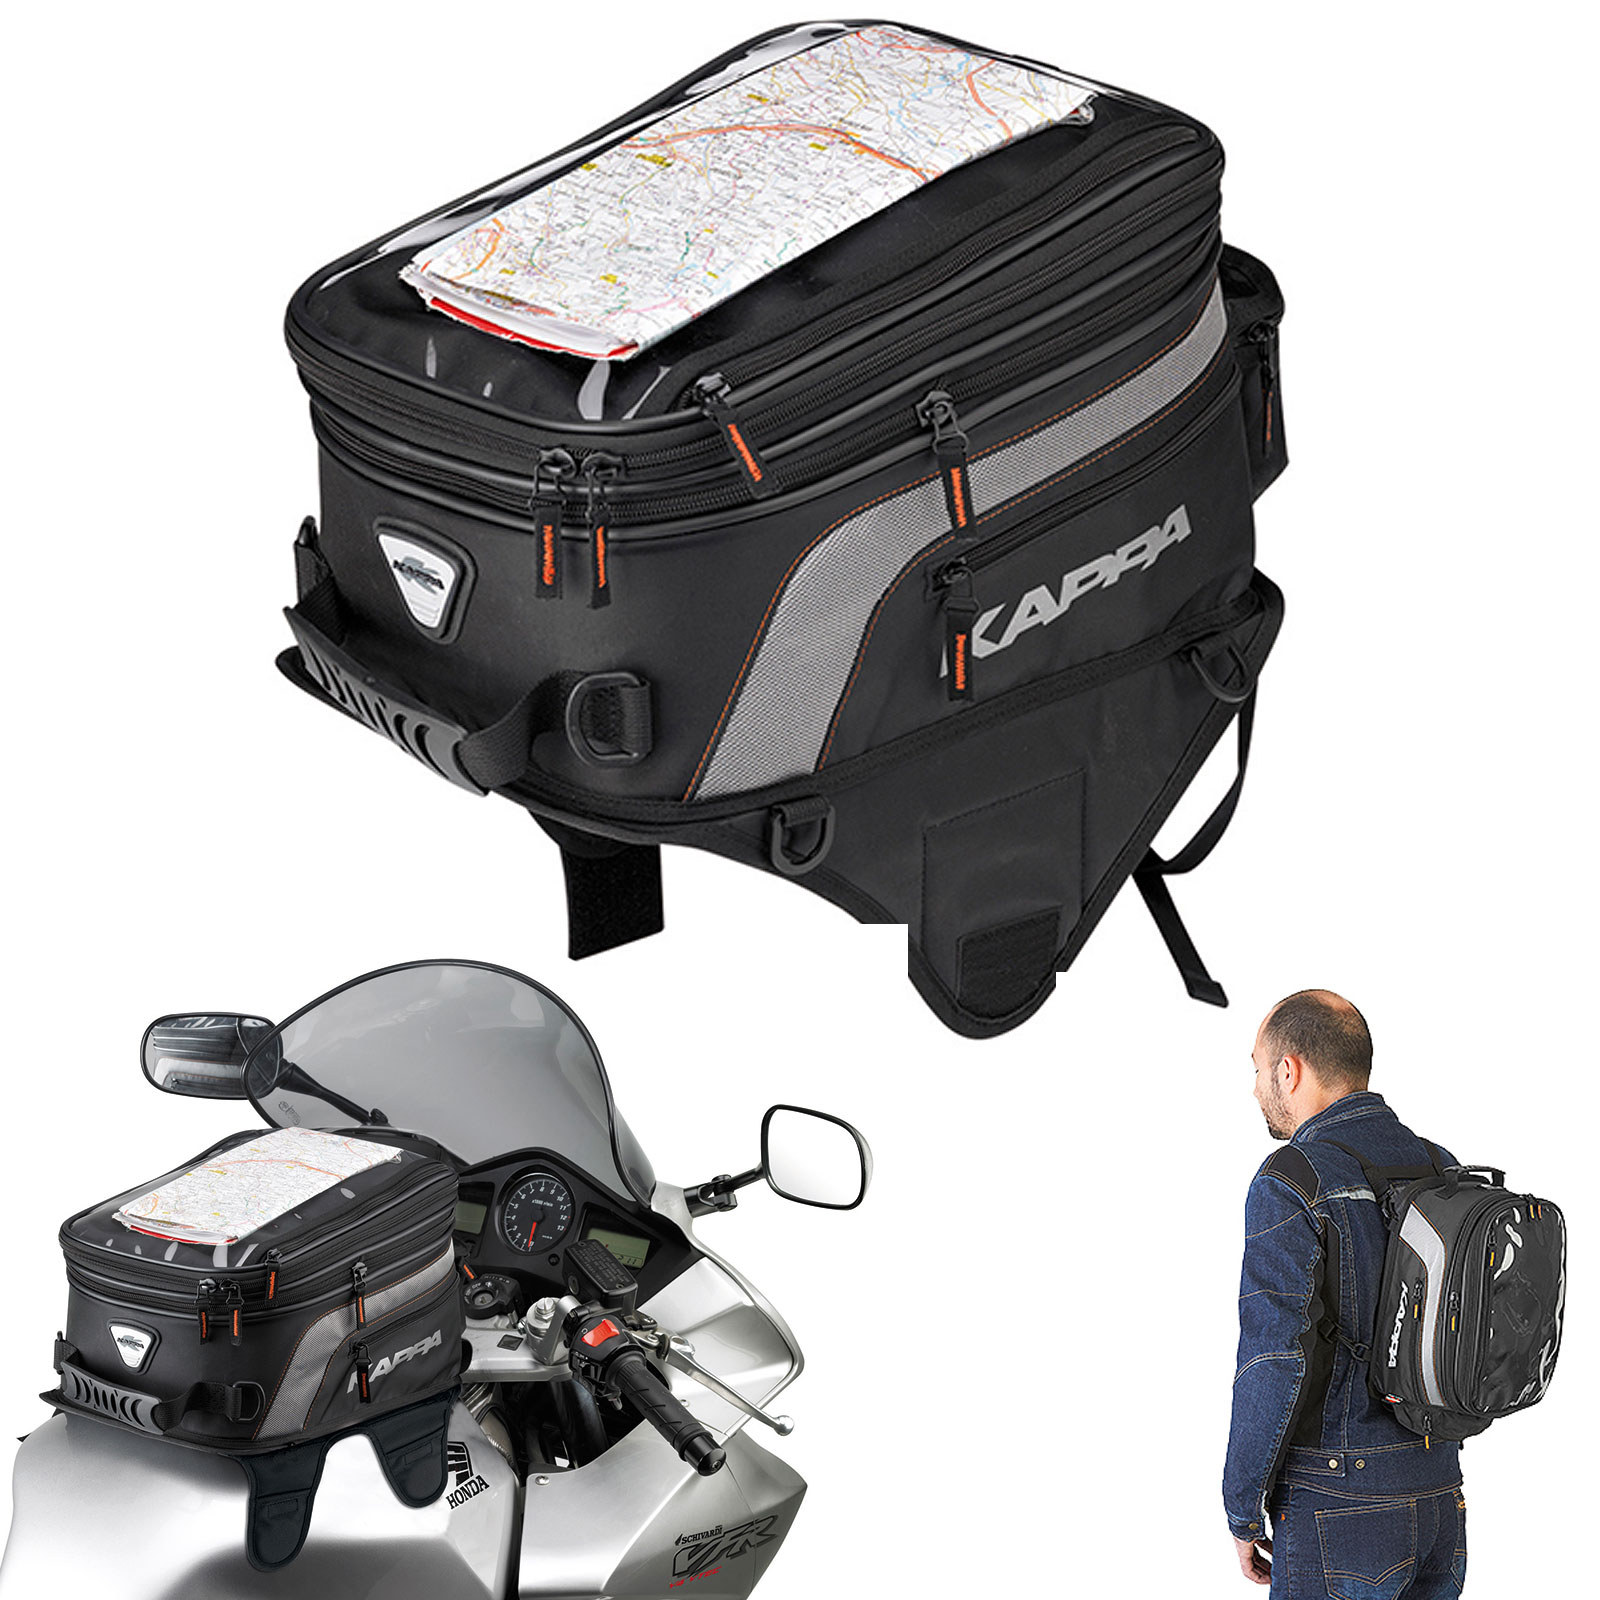 eefd5abccd Details about Kappa By Givi Expandable Magnetic & Strap On Motorcycle Tank  Bag Black 14-24L